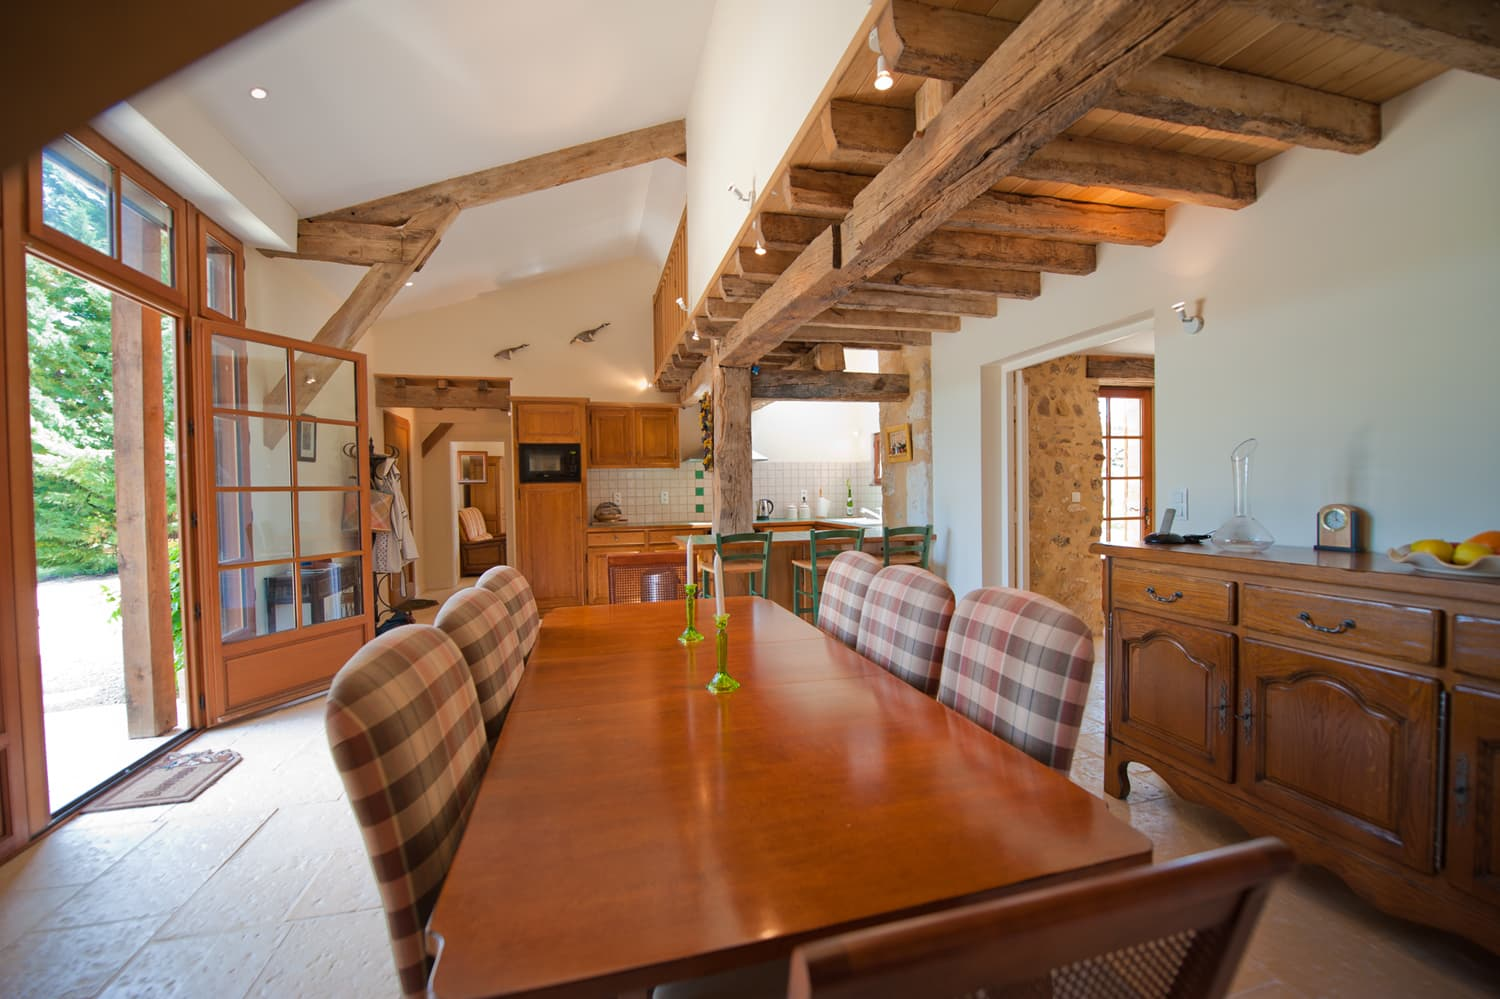 Dining room in Dordogne holiday villa